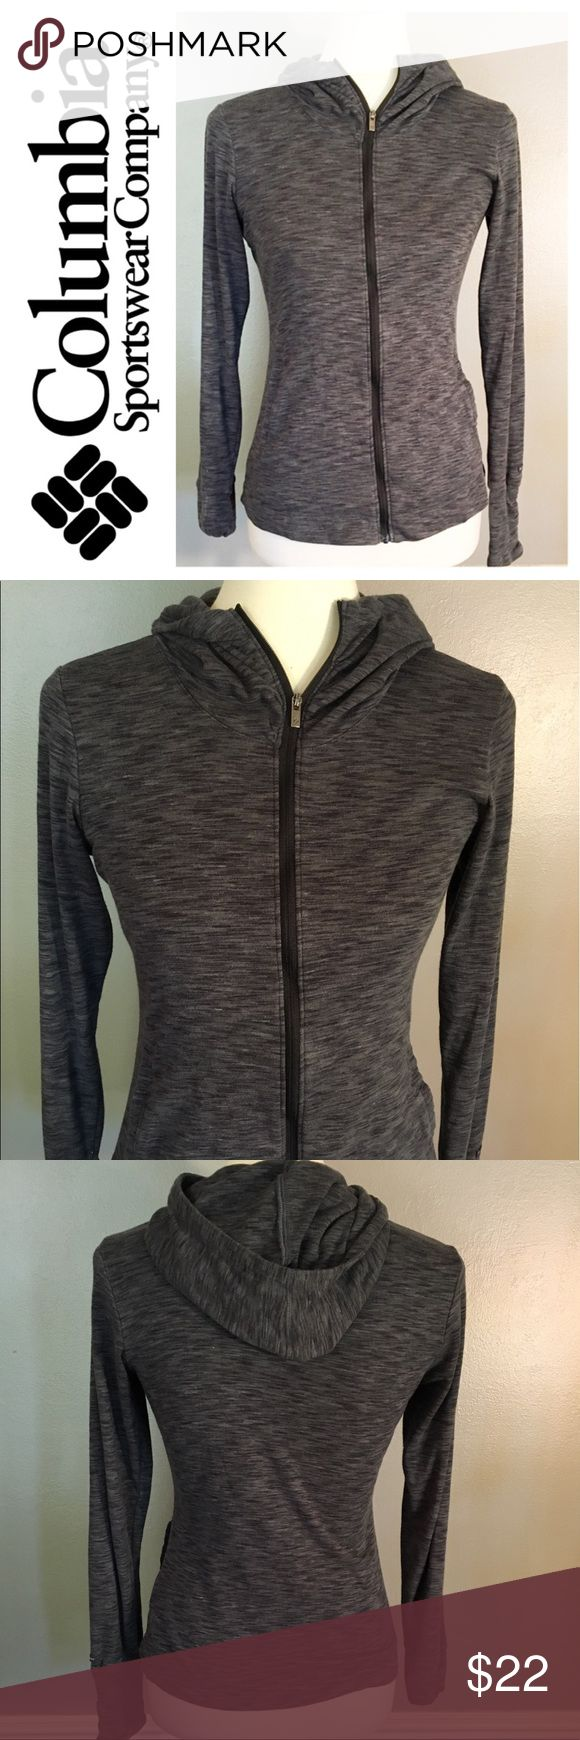 Columbia sportswear zip-up hoodie size XS Columbia sportswear gray zip-up hoodie. EUC without rips, stains, or holes. Size XS. Columbia Tops Sweatshirts & Hoodies